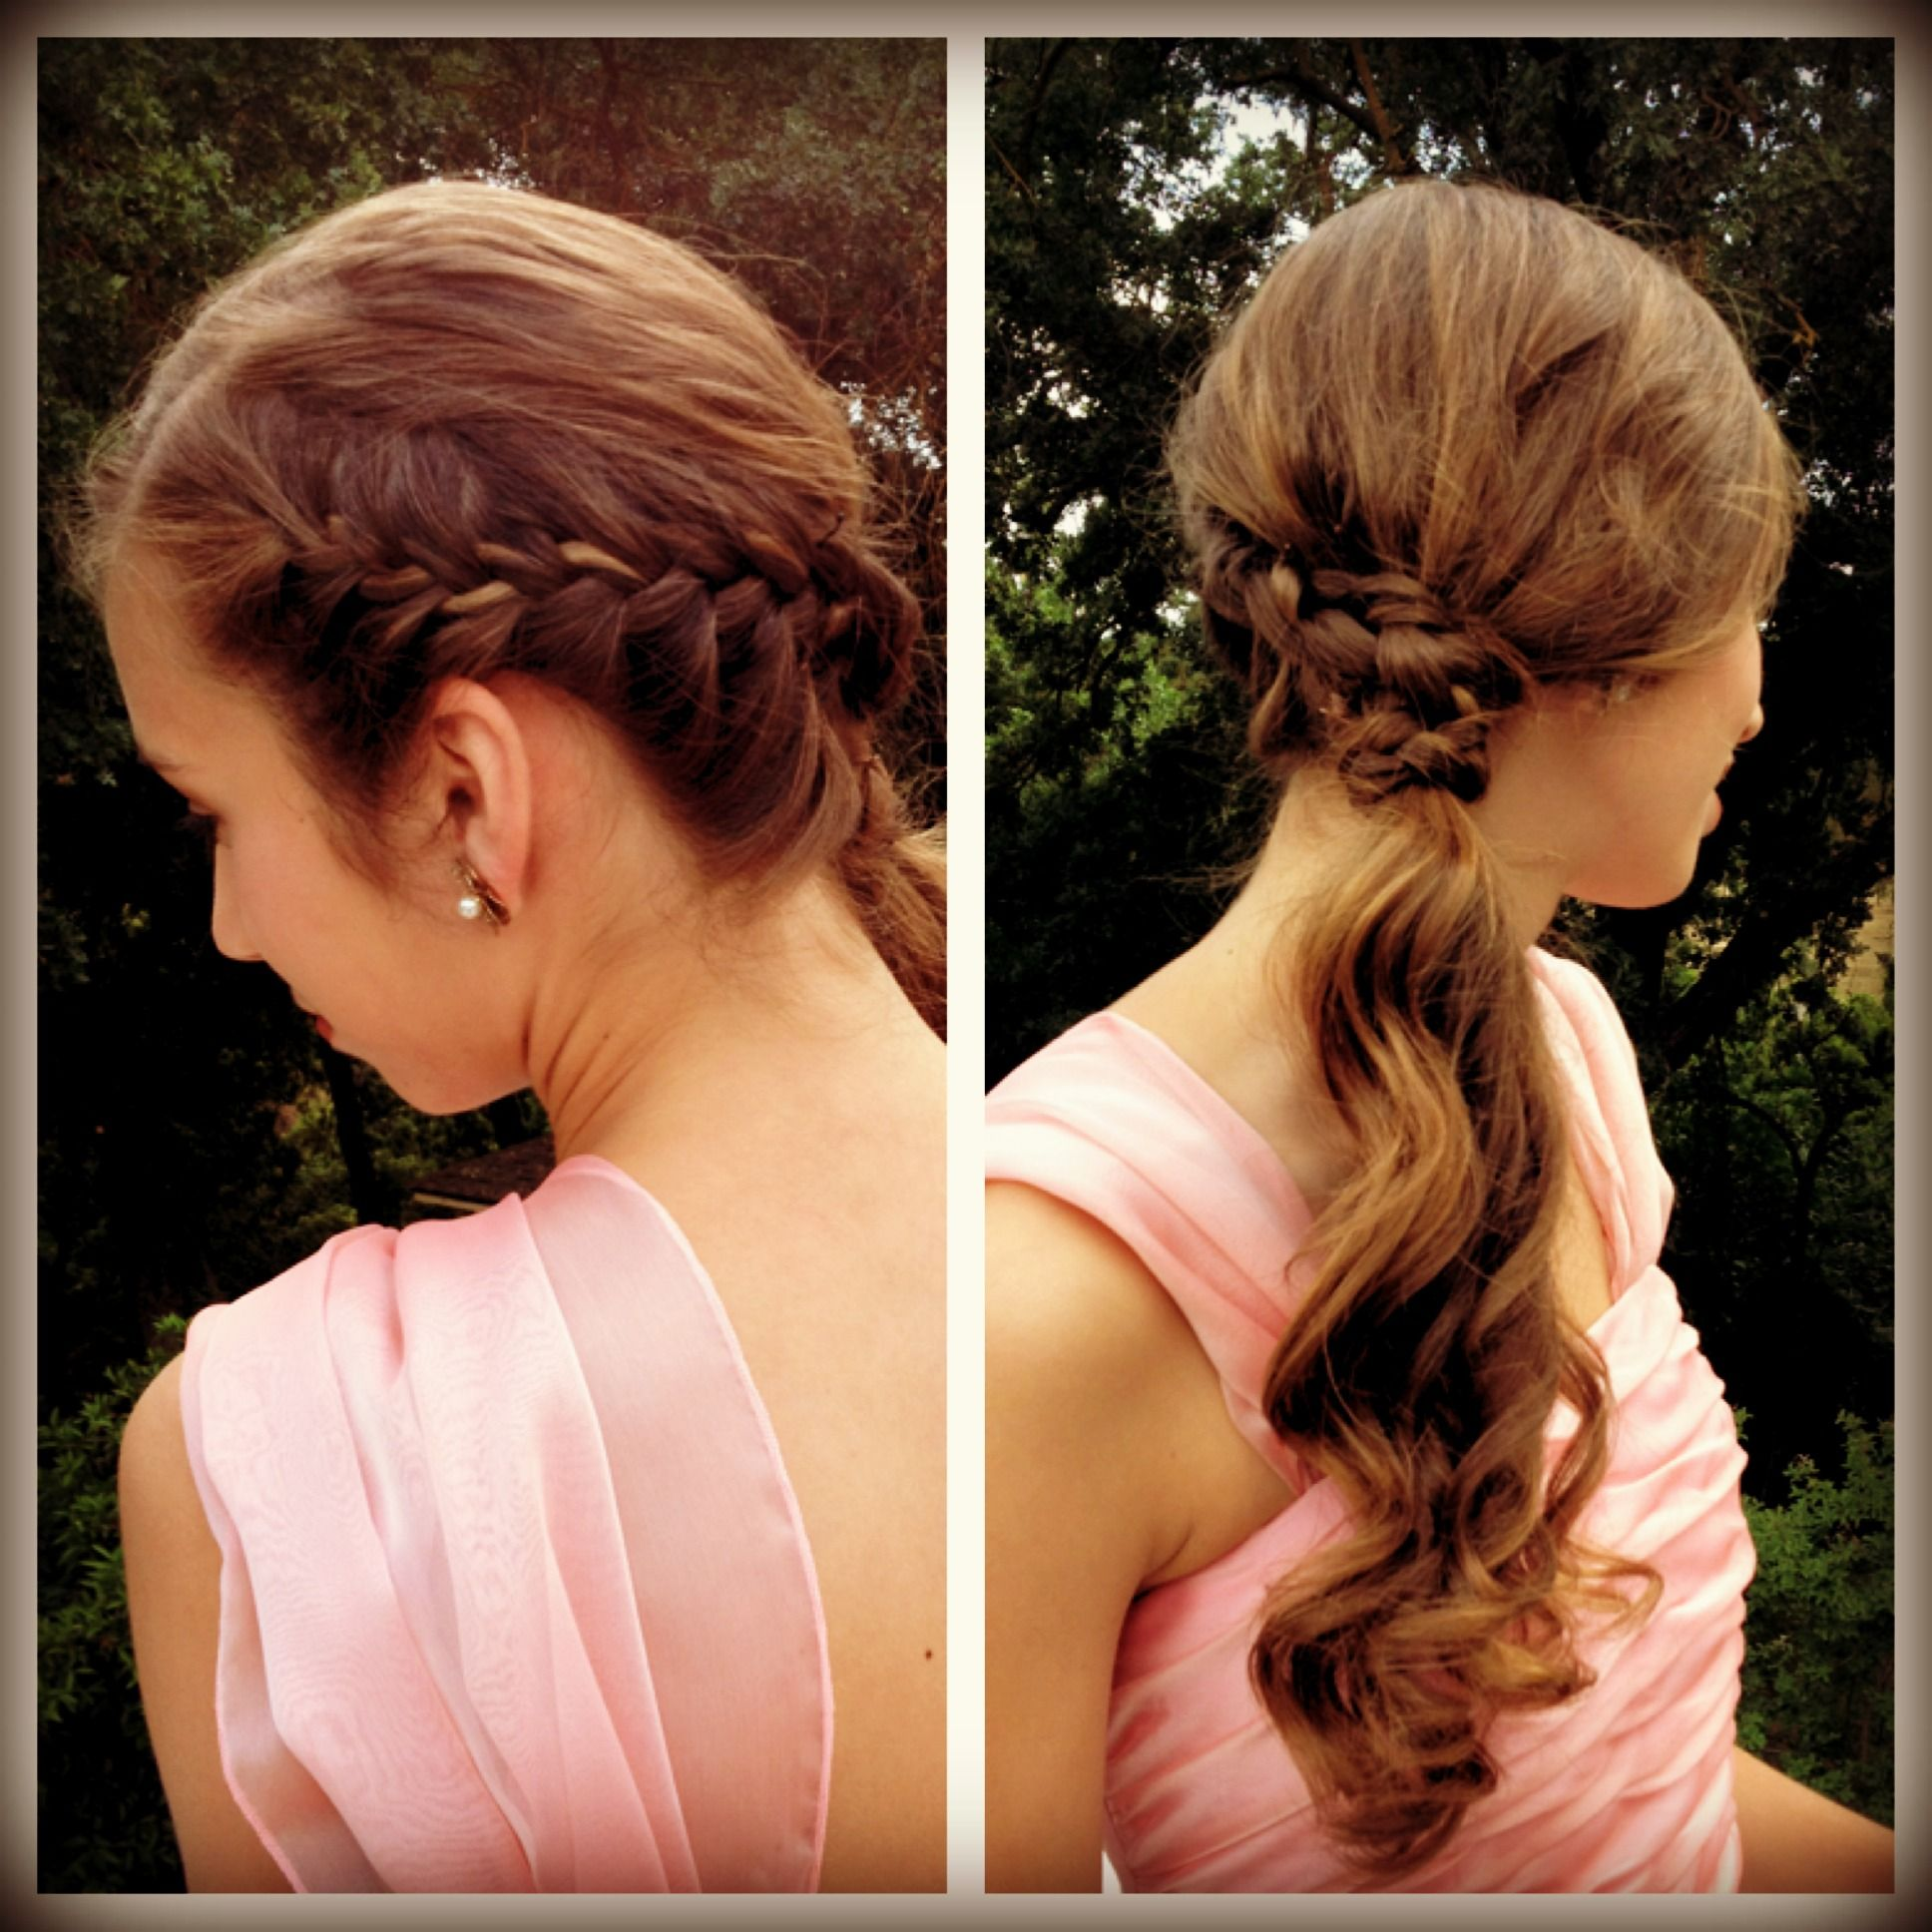 French braiding tips - Emily S Hairstyle For Our Grandmas Wedding French Braid Into Side Ponytail